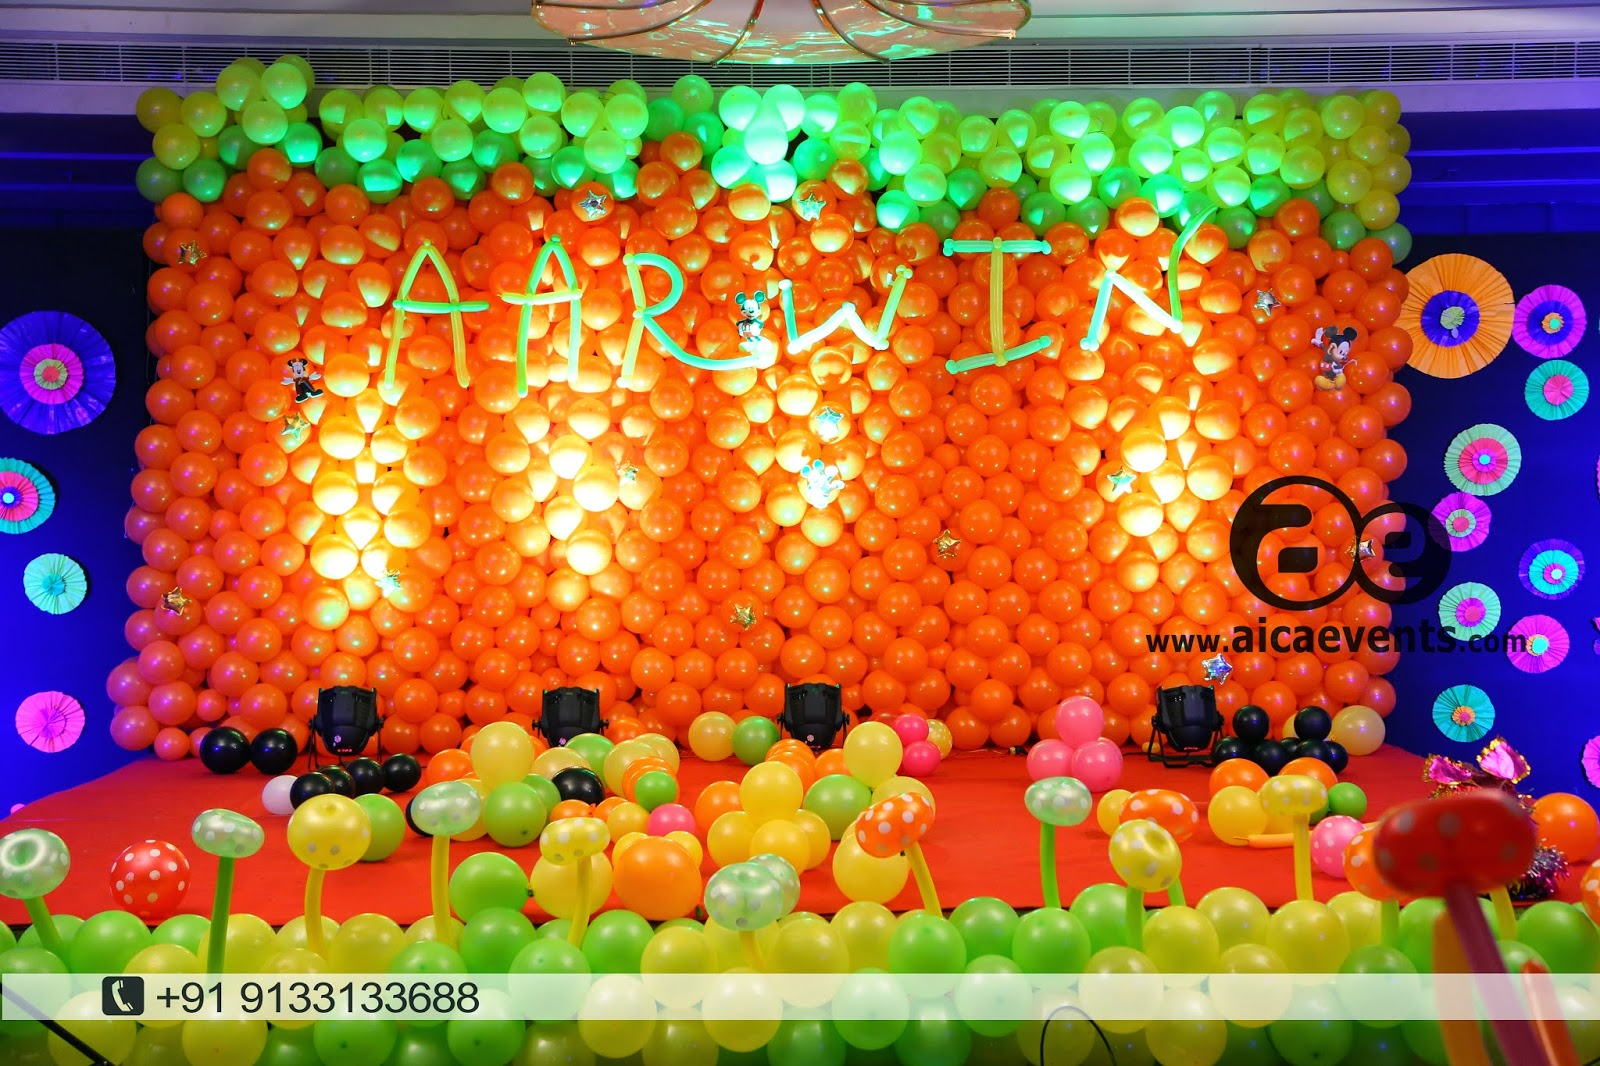 Aicaevents India Balloon wall Stage Backdrop decoration